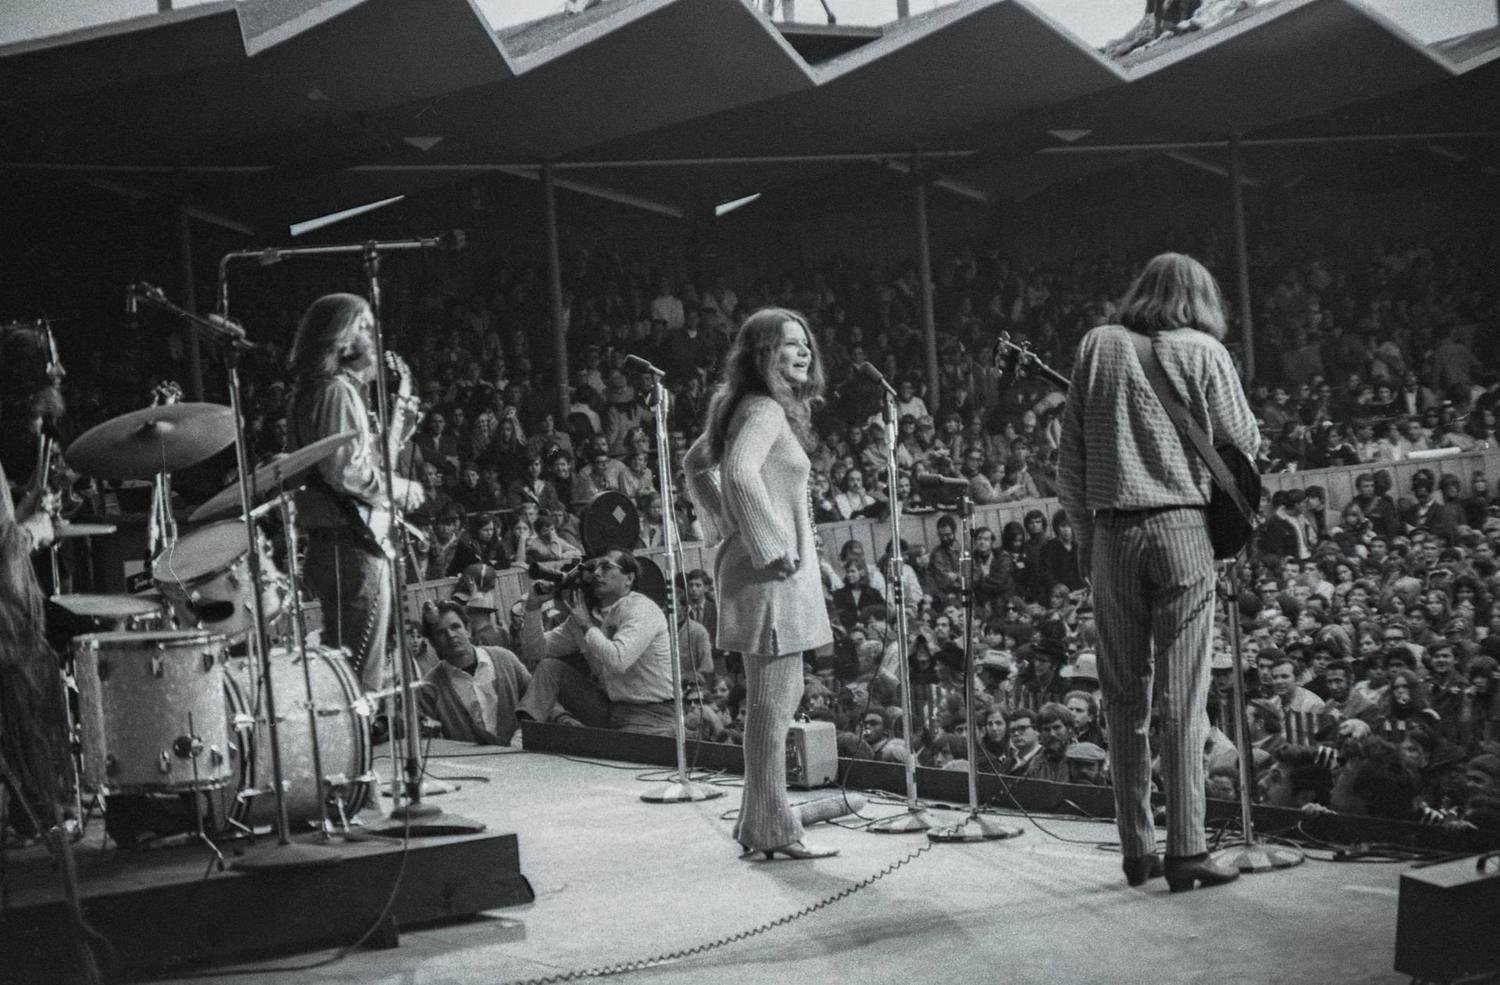 Rarely Seen Photographs of of Jimi Hendrix, Janis Joplin and The Who at The Monterey Pop Festival in June 1967